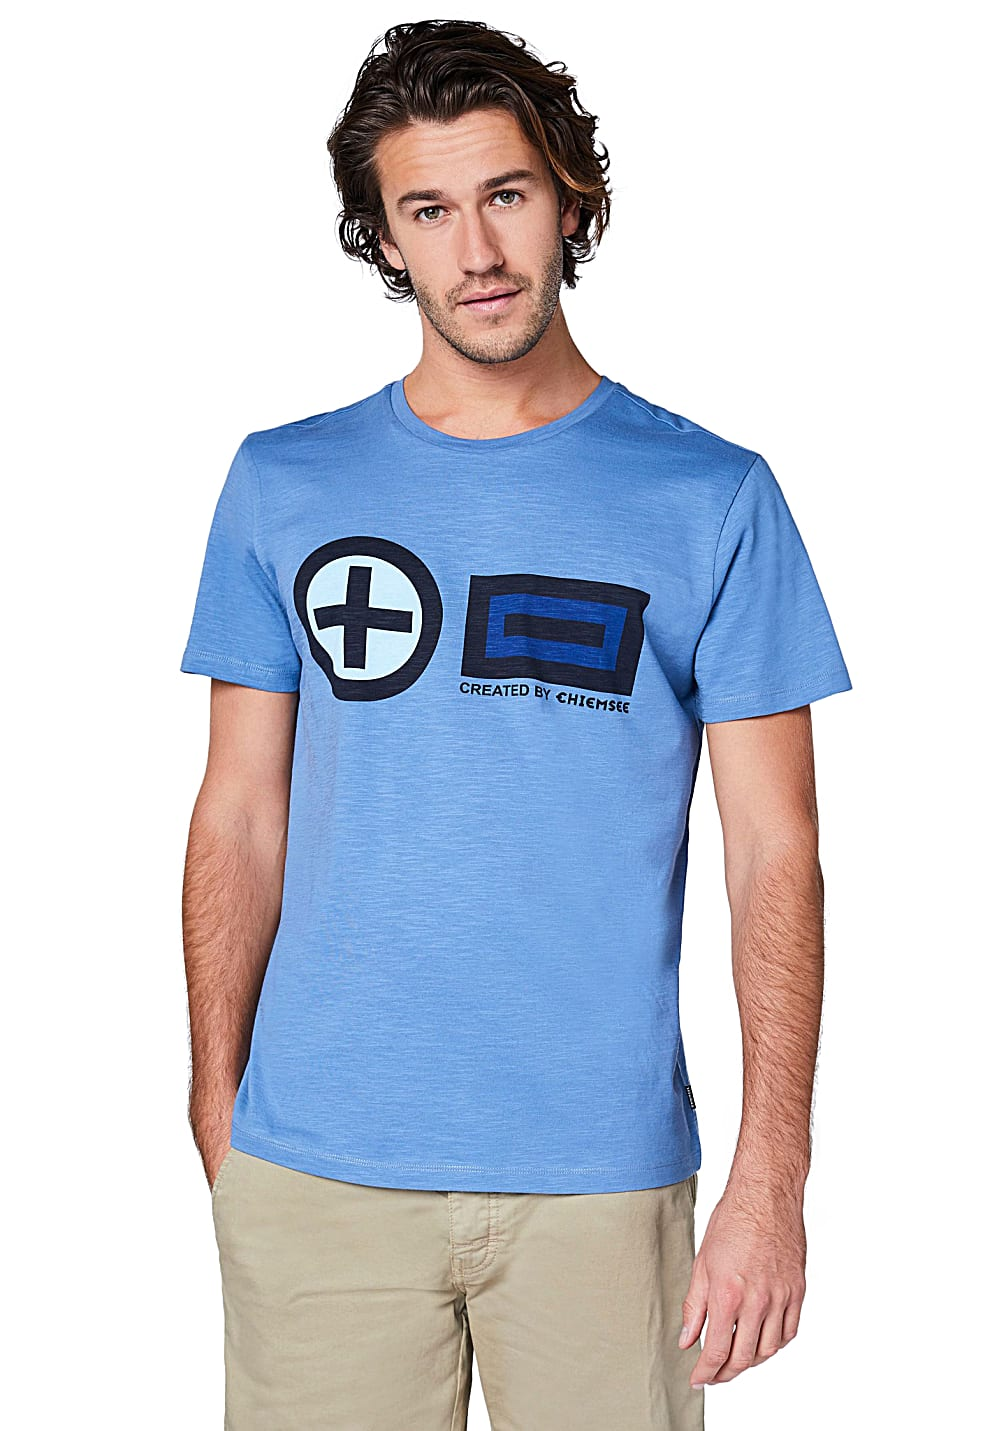 73e1b055f76811 Chiemsee T-Shirt - T-Shirt für Herren - Blau - Planet Sports